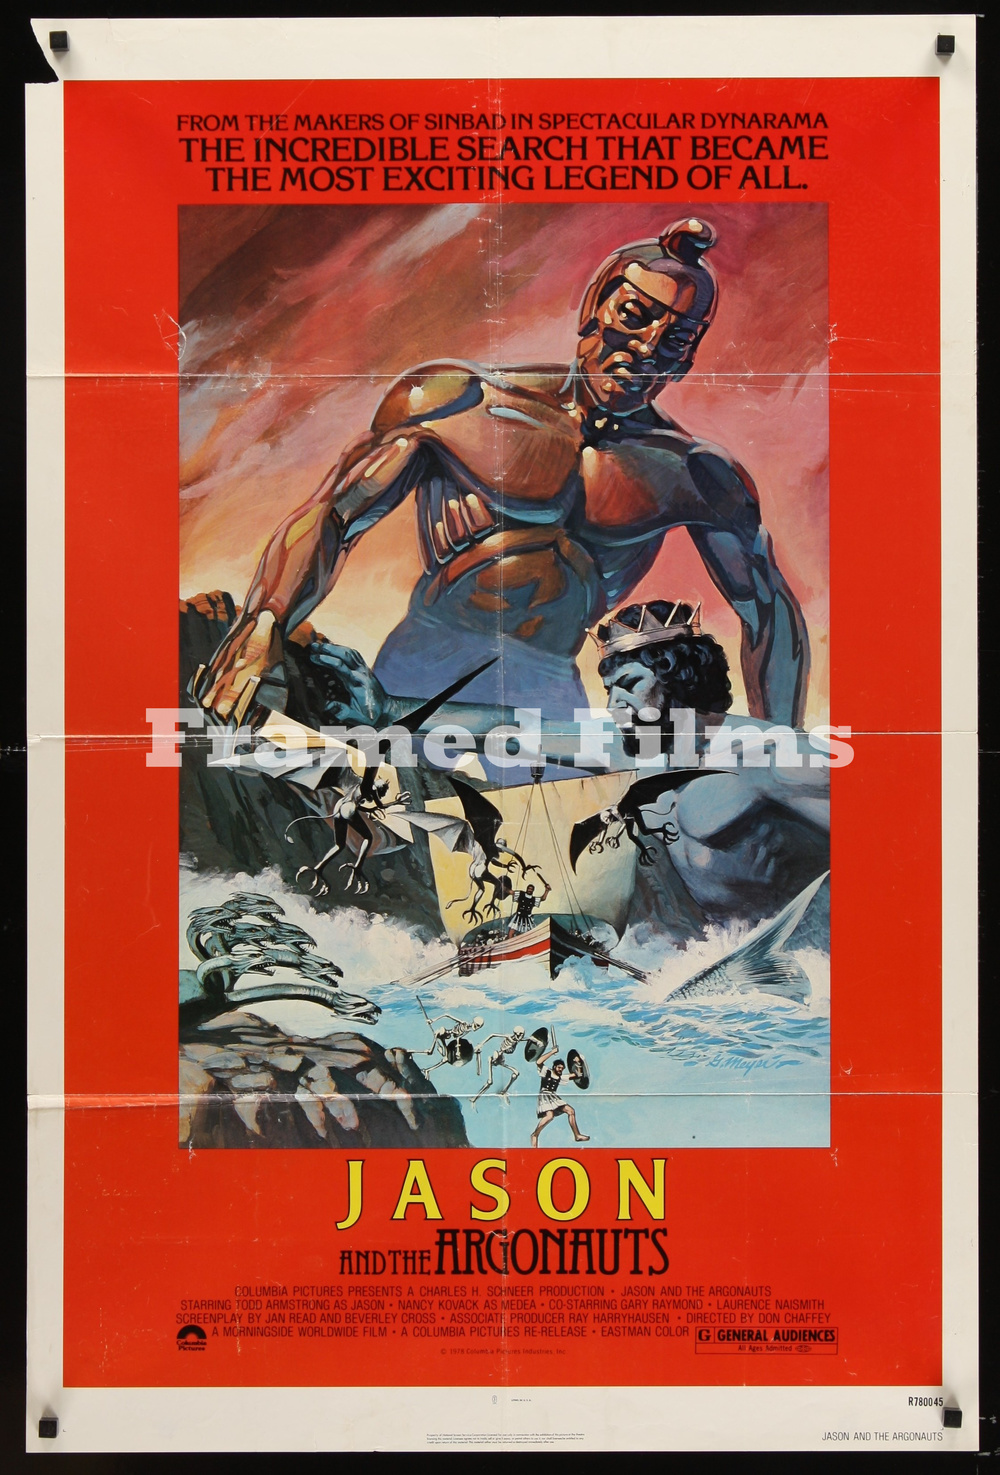 jason_and_the_argonauts_R78_NZ03299_L.jpg